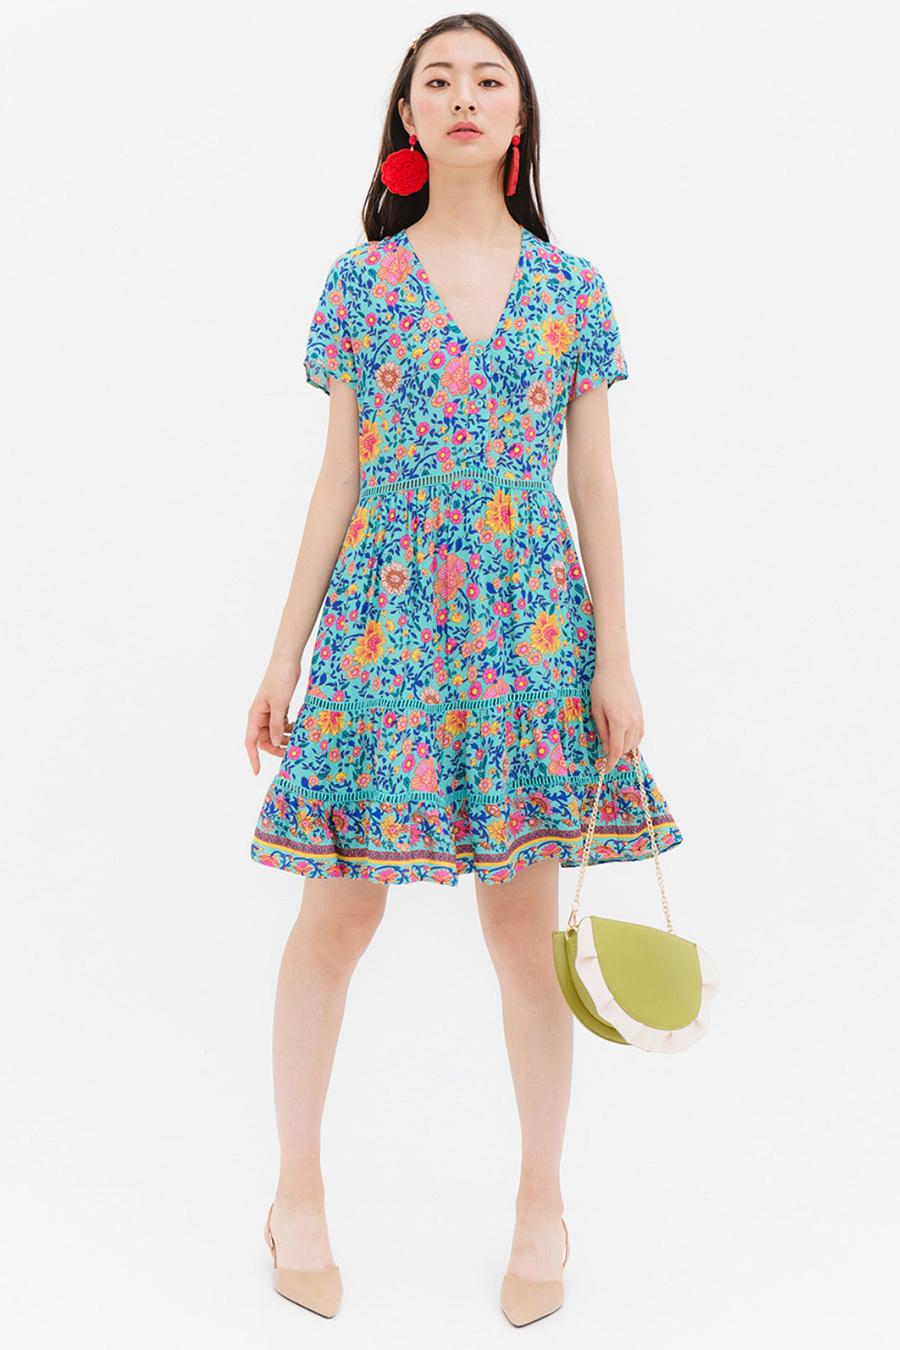 *SALE* CHLOE DRESS - PEONY